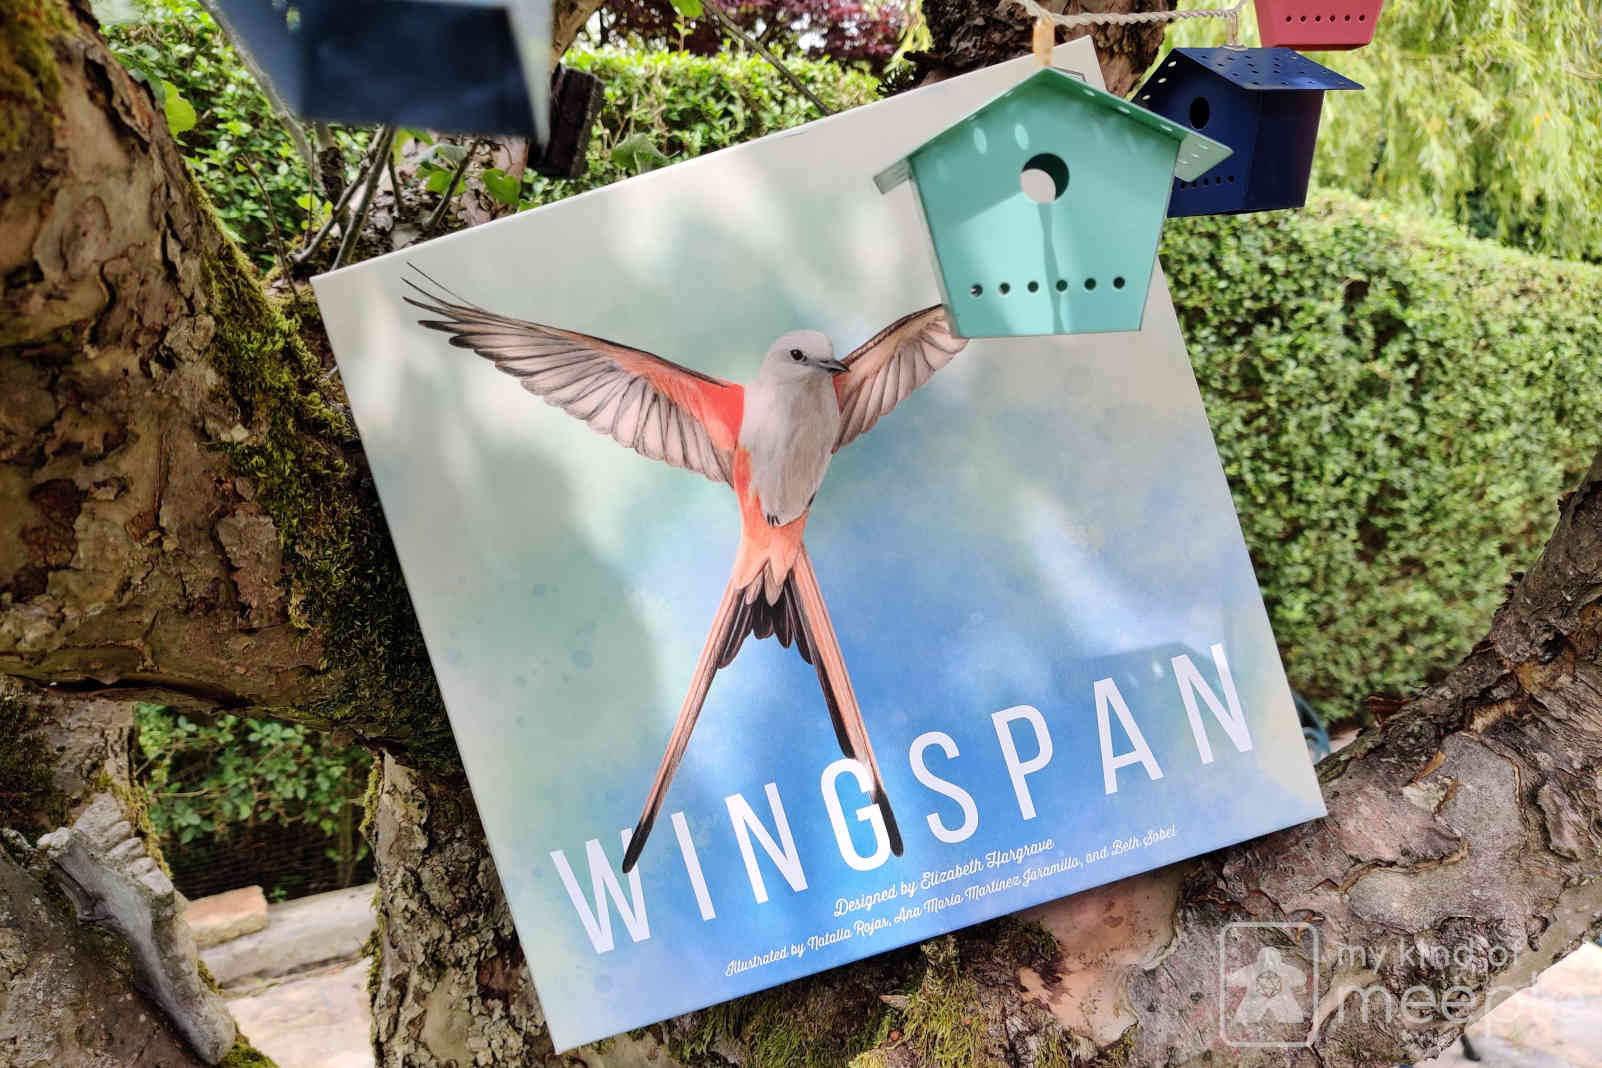 Wingspan board game box in my apple tree